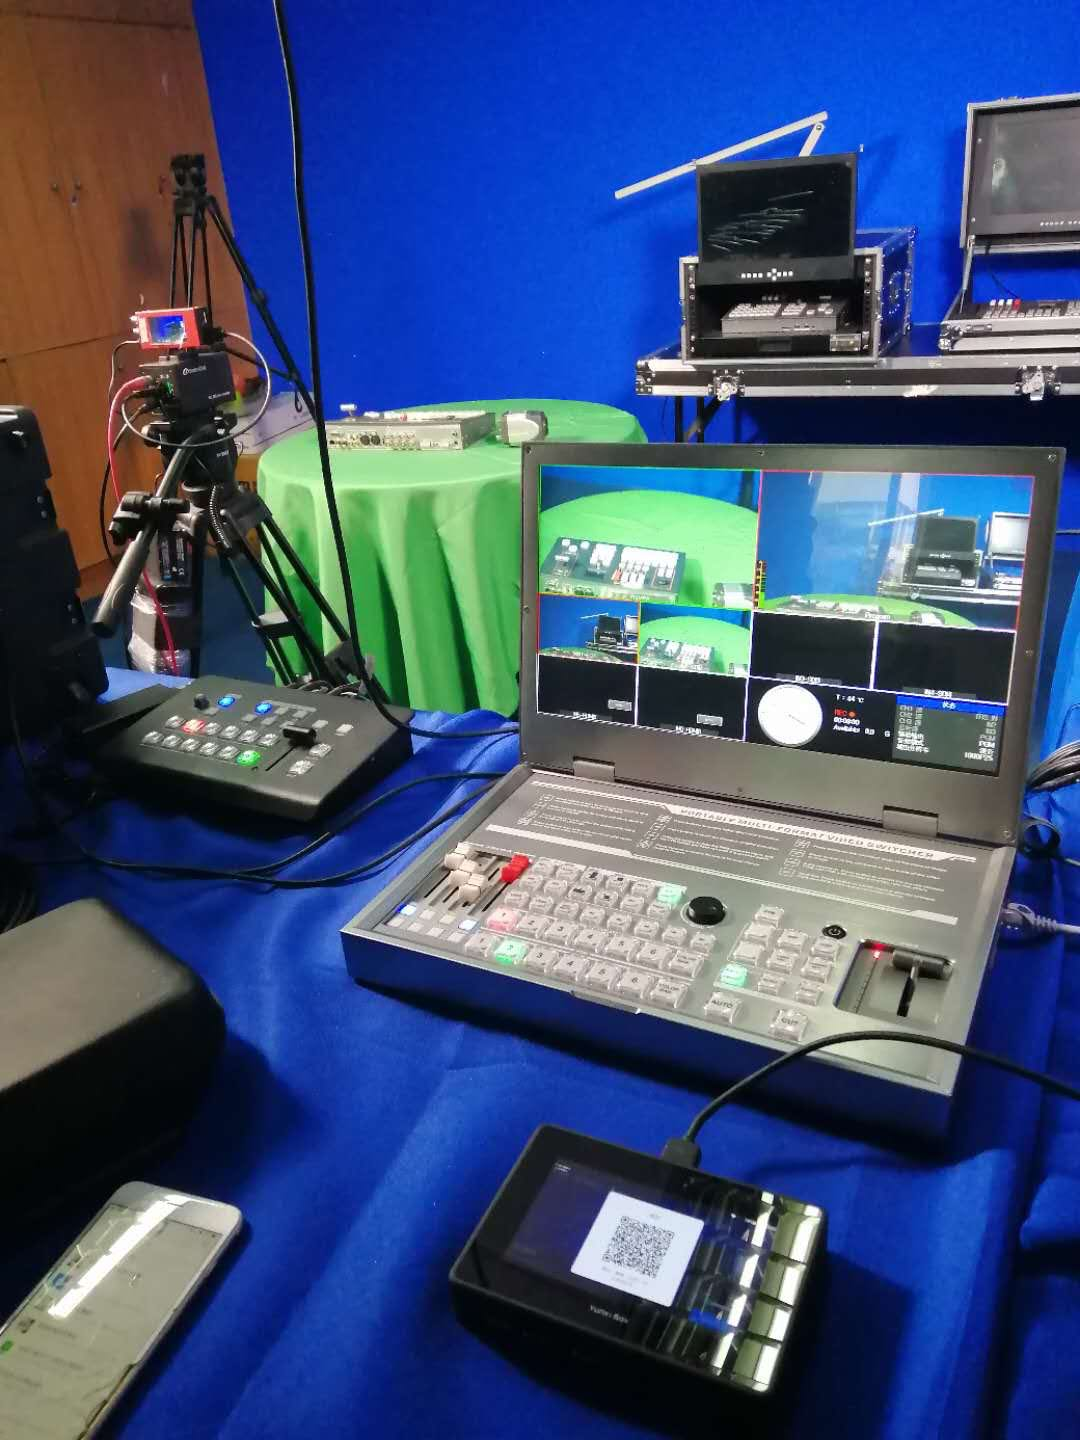 The role and principle of the Tally system in the production of TV studios and OB trucks